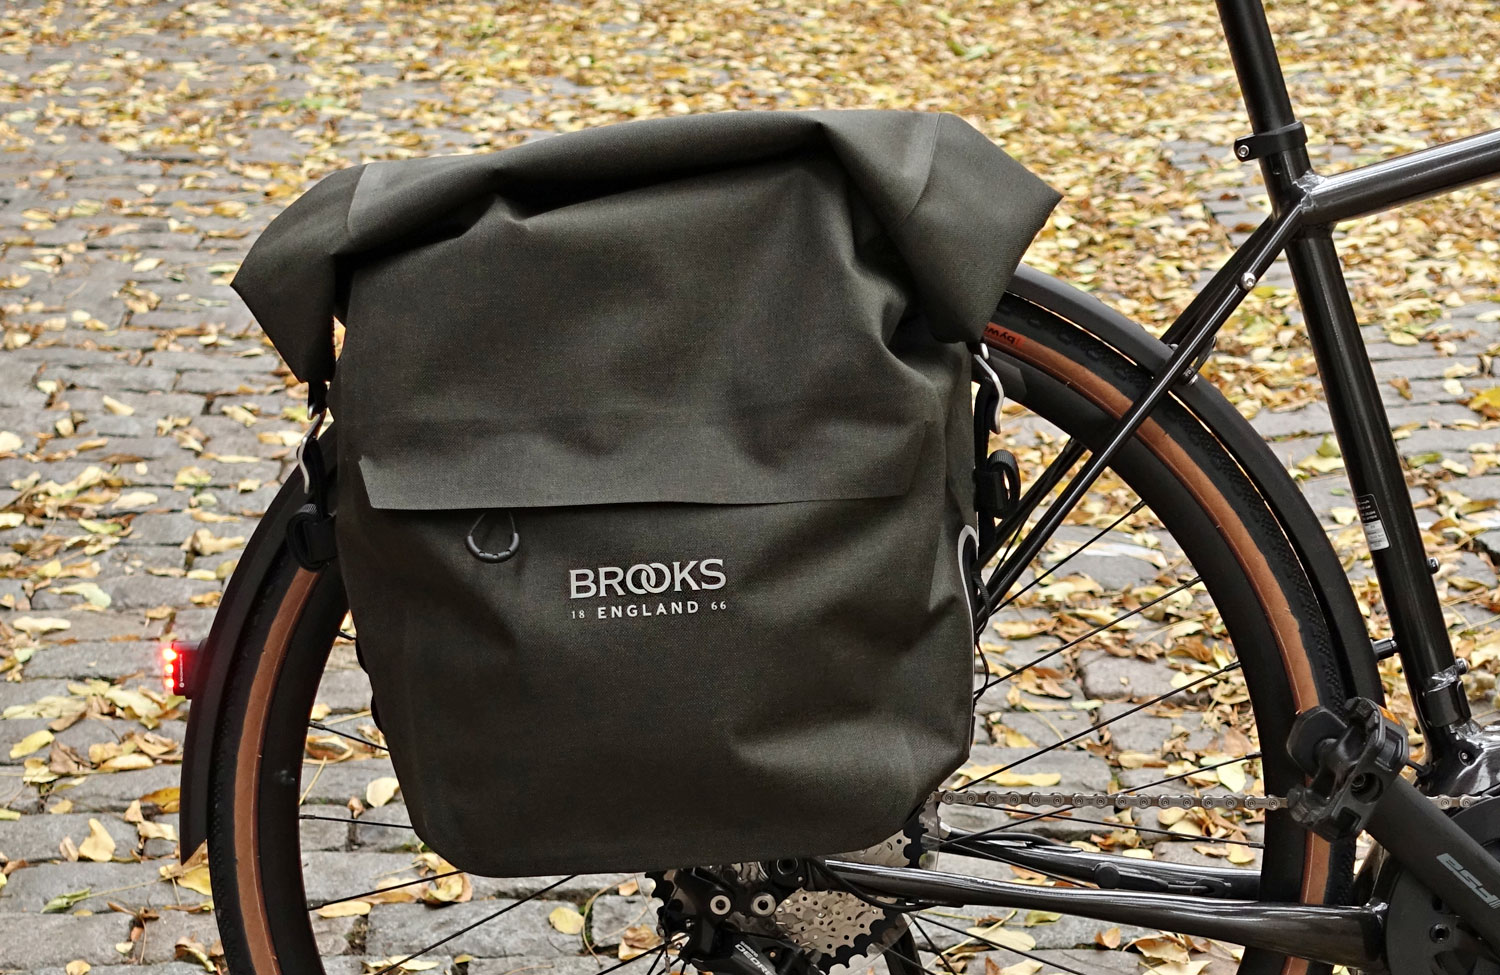 In the check: the new Scape Pannier from Brooks